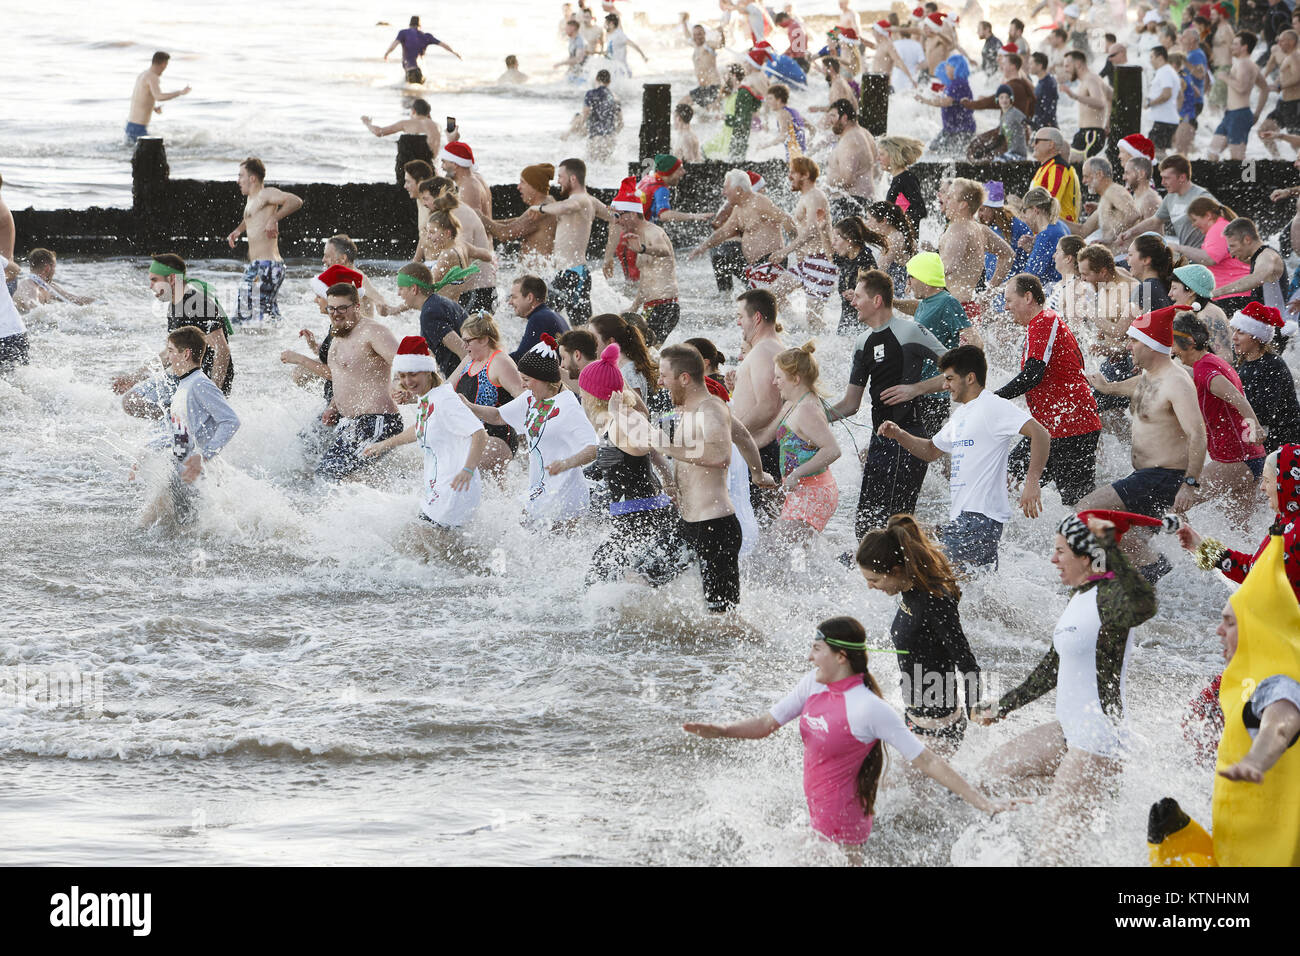 Boxing Day swimmers race to take the plunge at Cromer, Norfolk, in aid of the Stroke Associaition. Credit: Keith - Stock Image